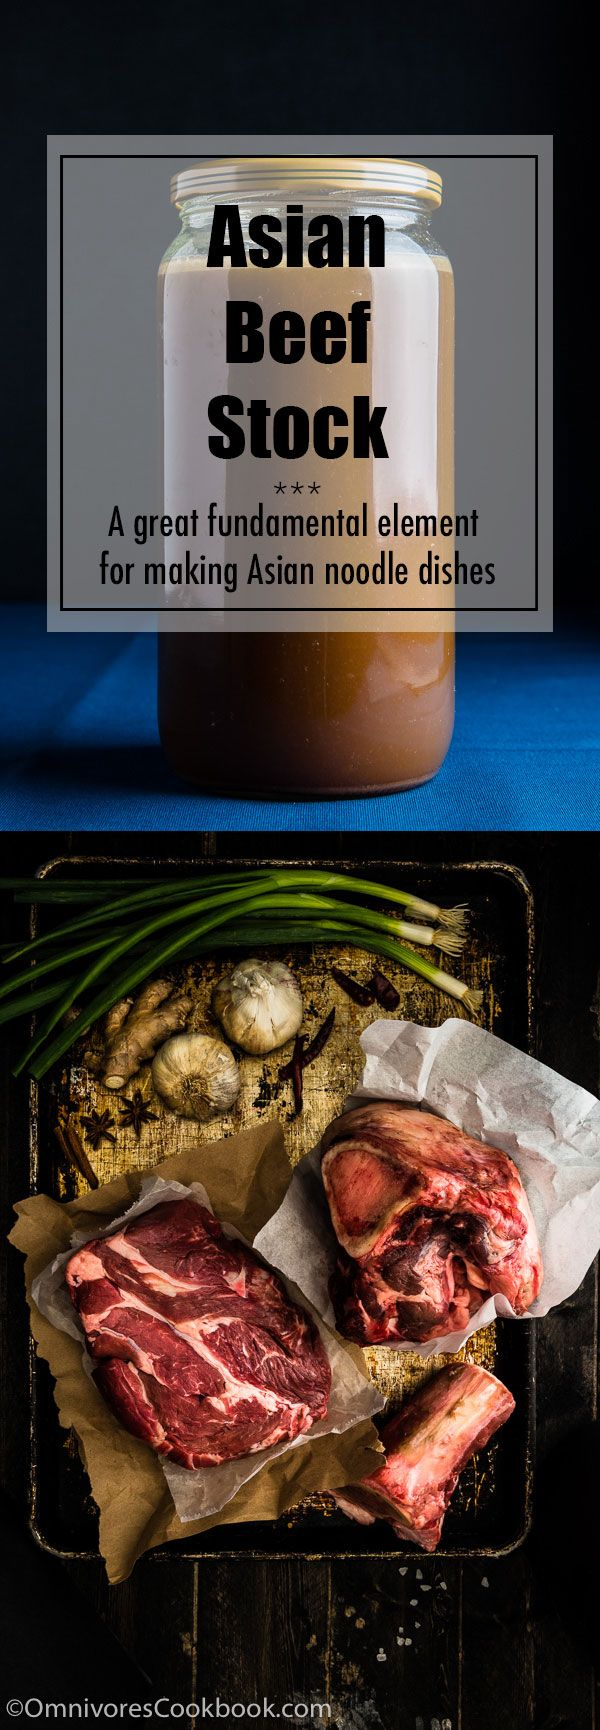 Asian Beef Stock